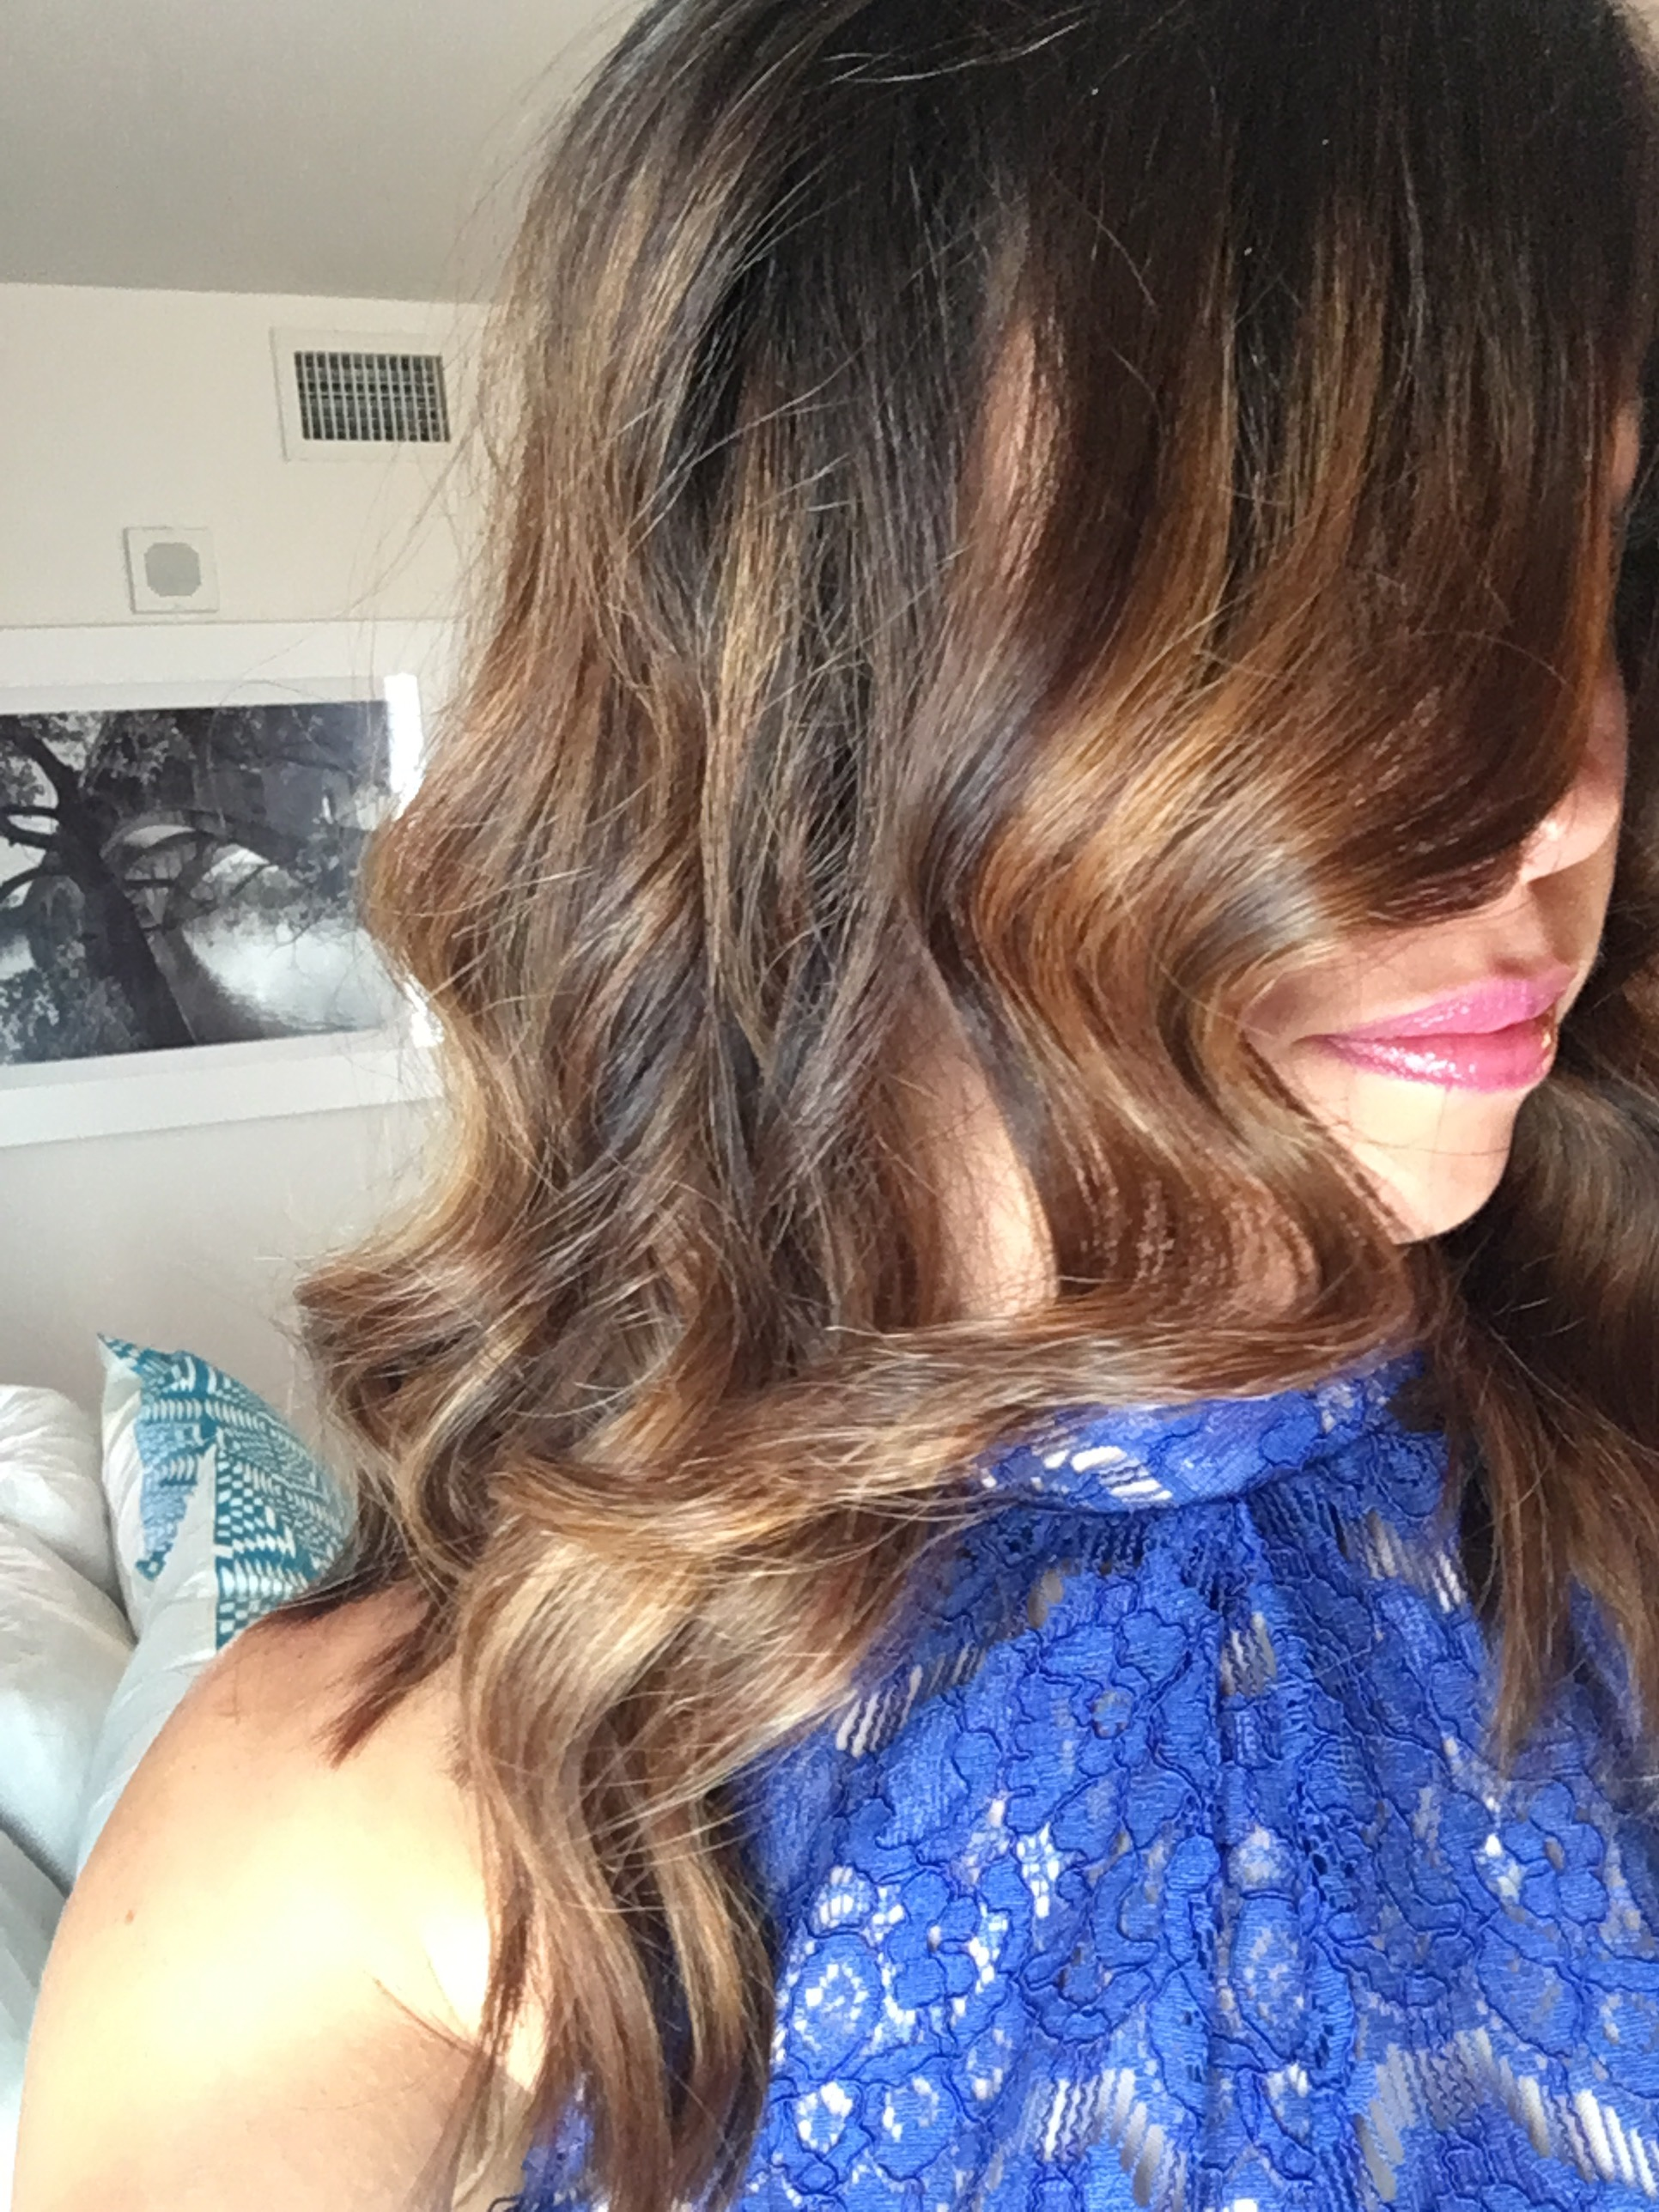 Wallpaper hd trend alert bob hairstyles of smartphone fall hair the ombre lob or long